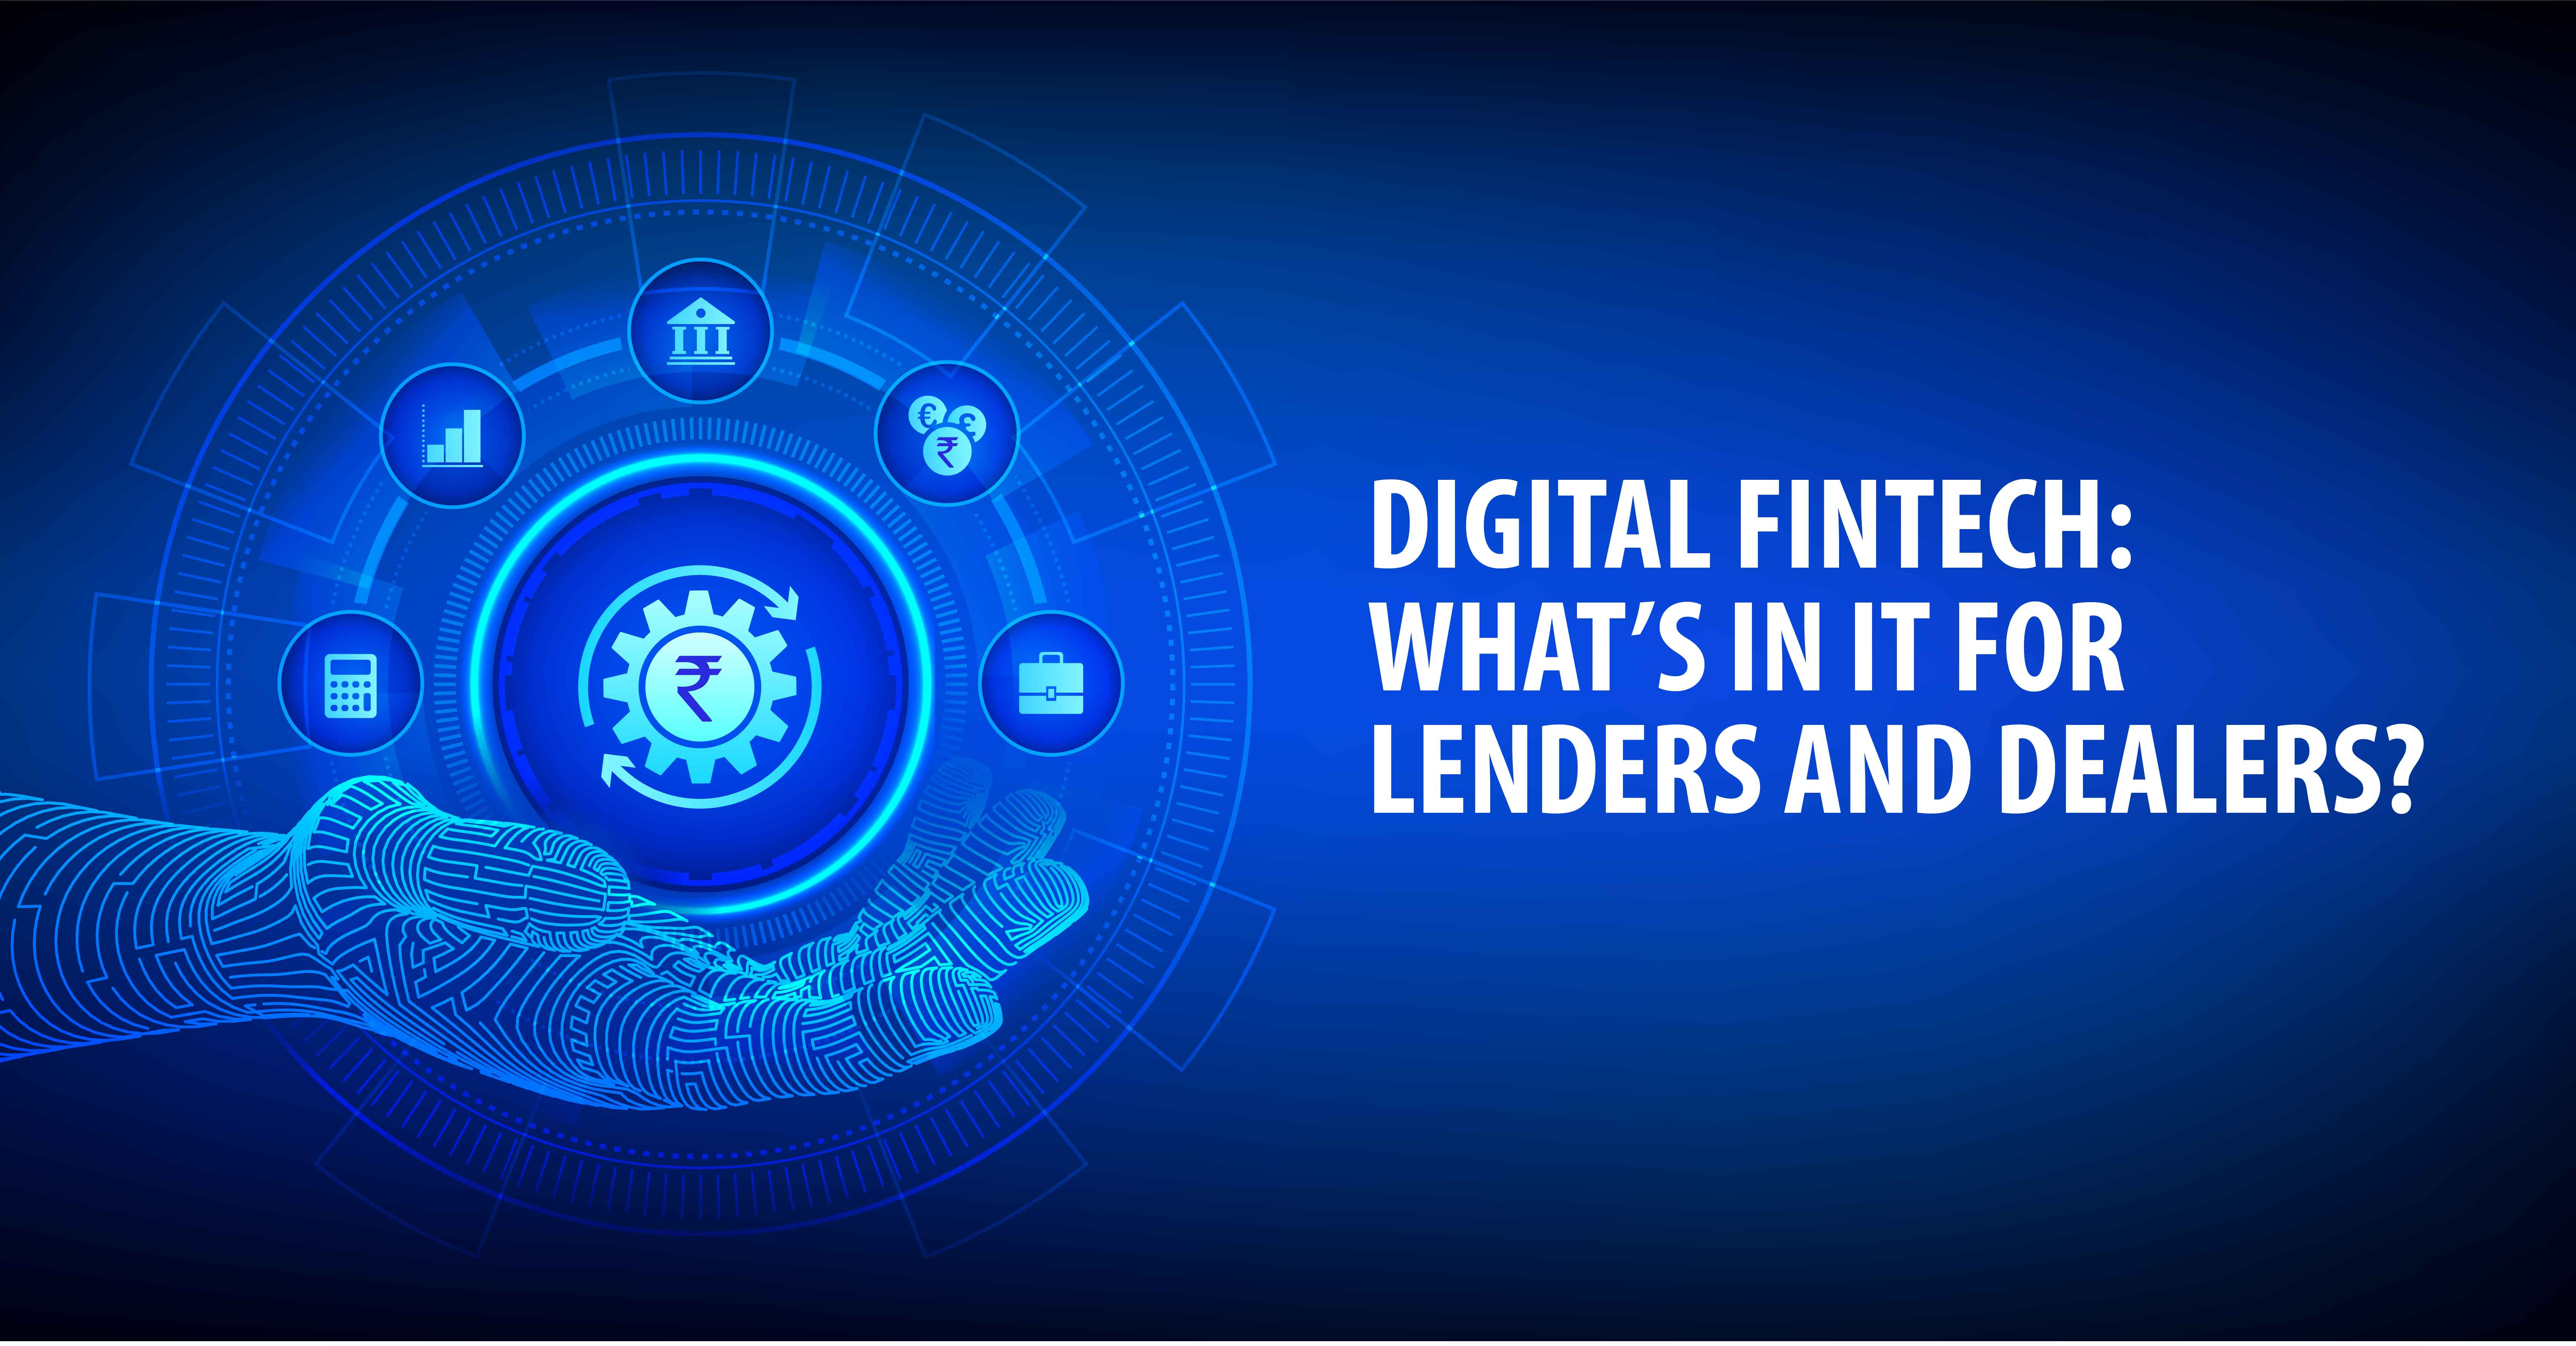 DIGITAL FINTECH: WHAT'S IN IT FOR LENDERS AND DEALERS?